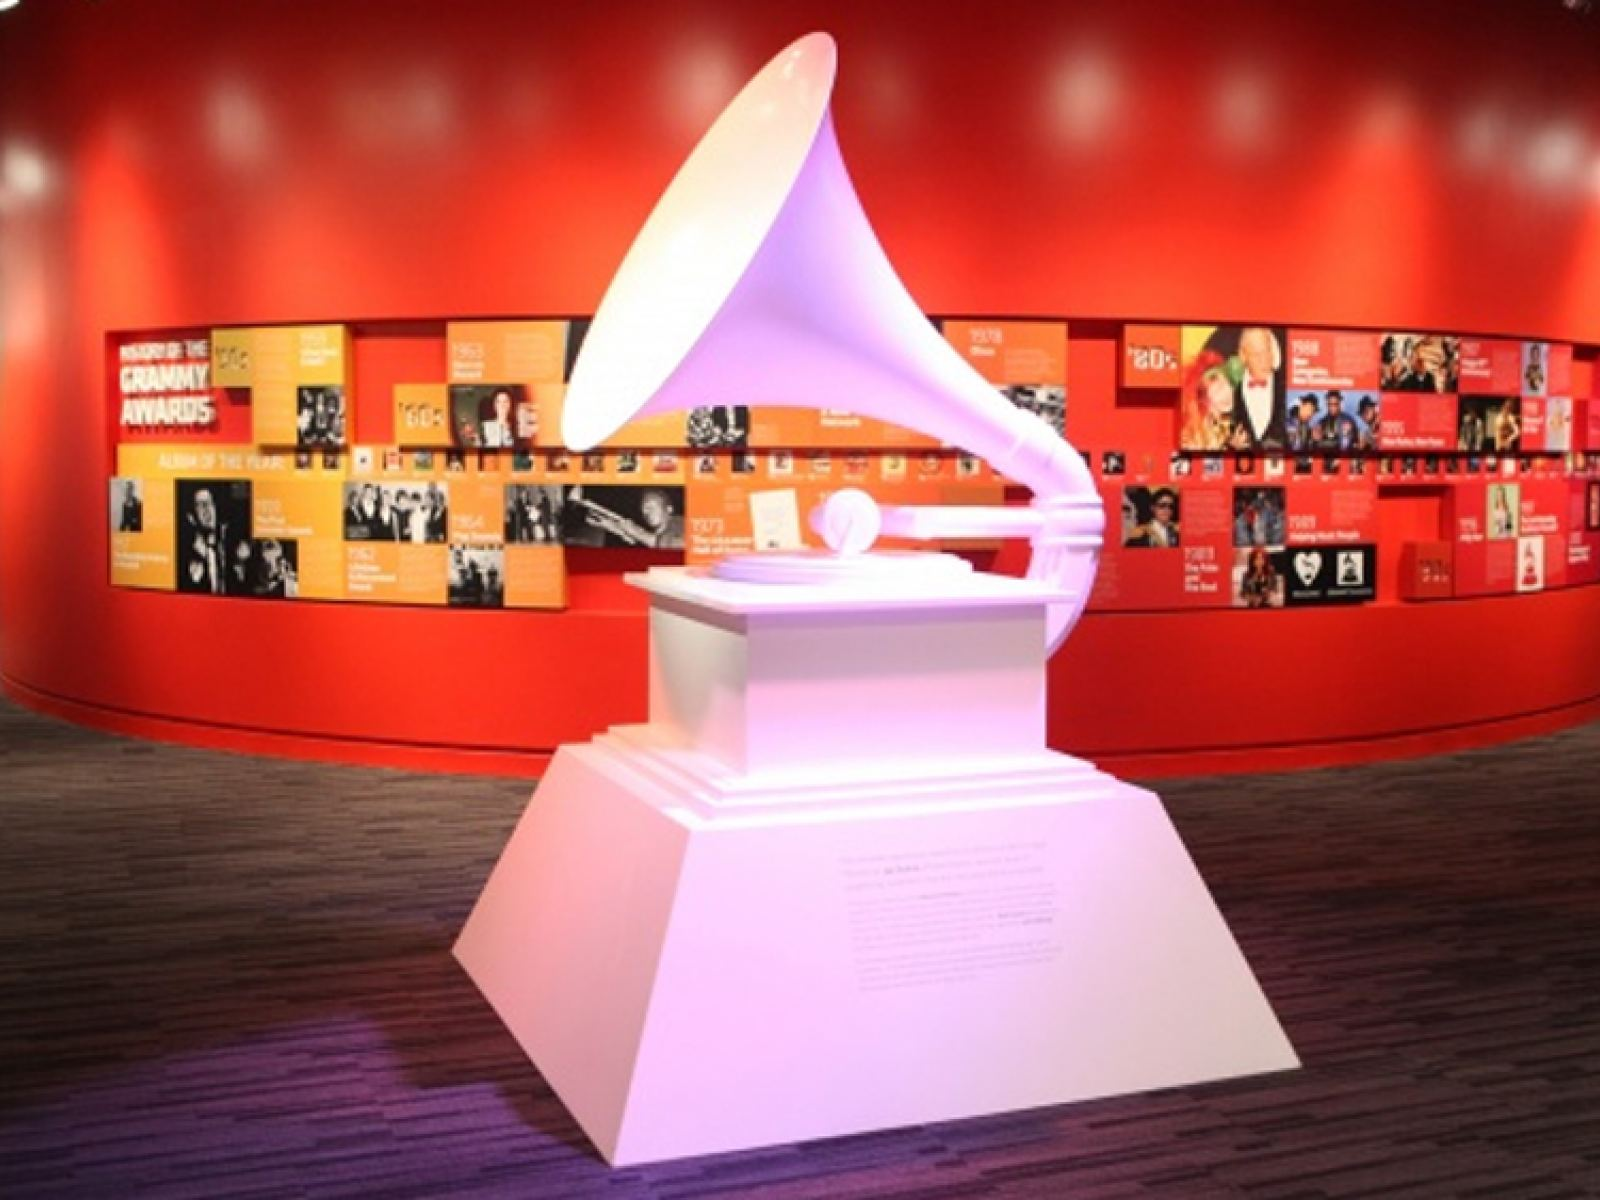 Main image for article titled Tune In & Check Out the Grammy Museum at L.A. LIVE